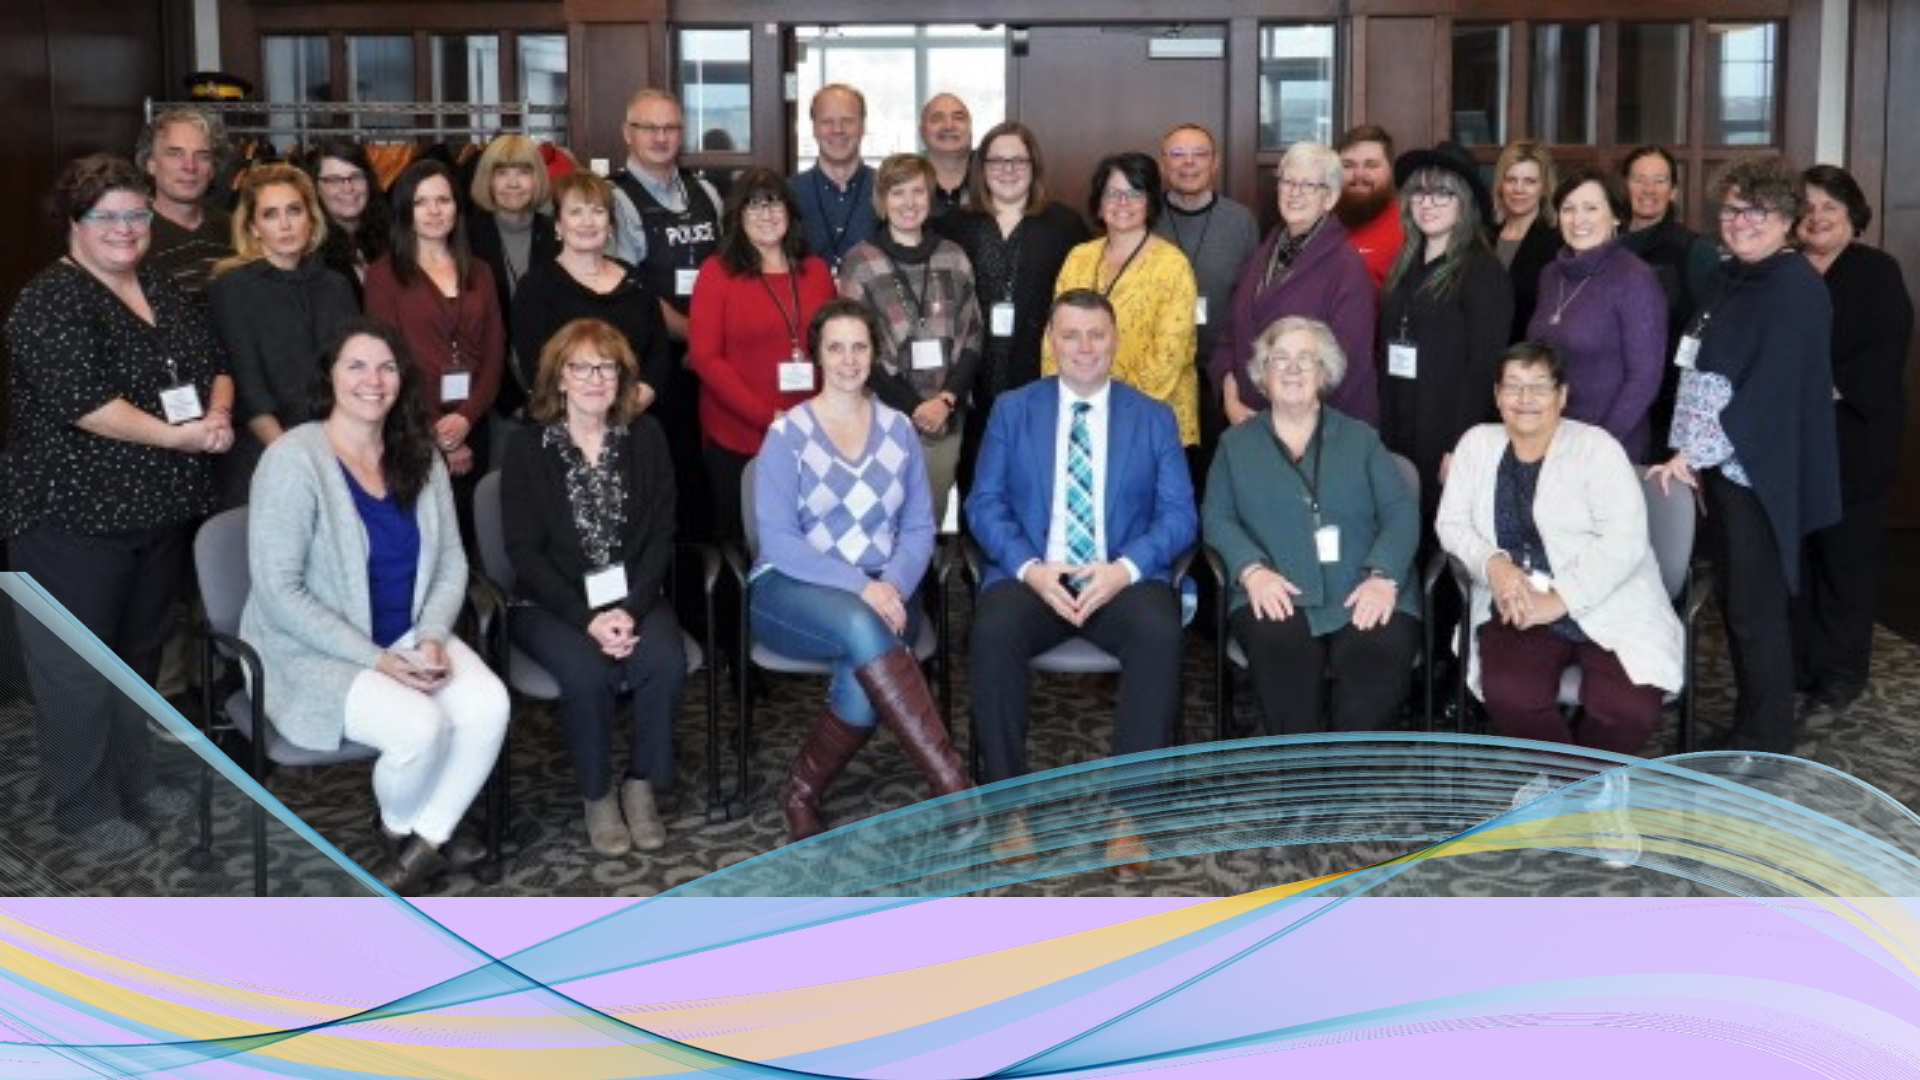 Group image of Premier's Action Committee on Family Violence Prevention 2019